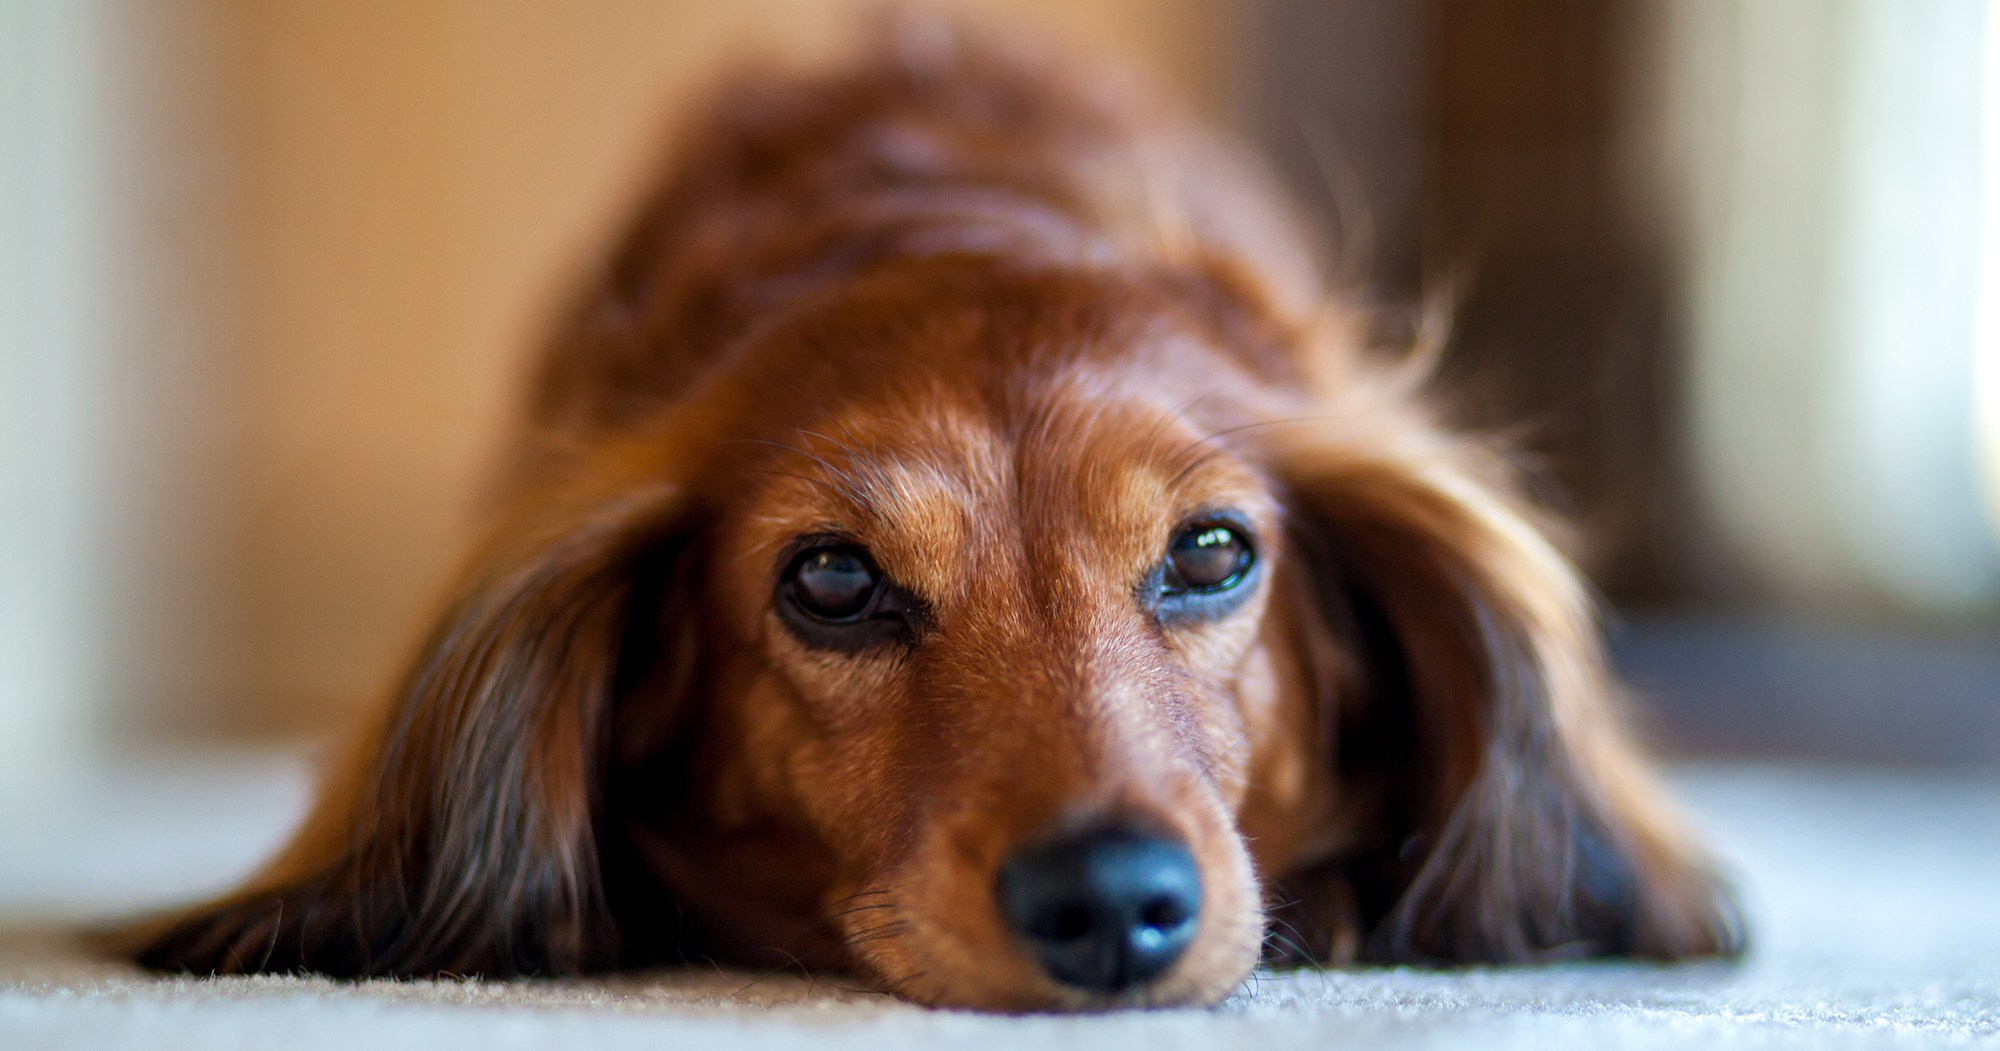 Grab the Tissues: Dachshund Reunites With Family Five Years After Going Missing